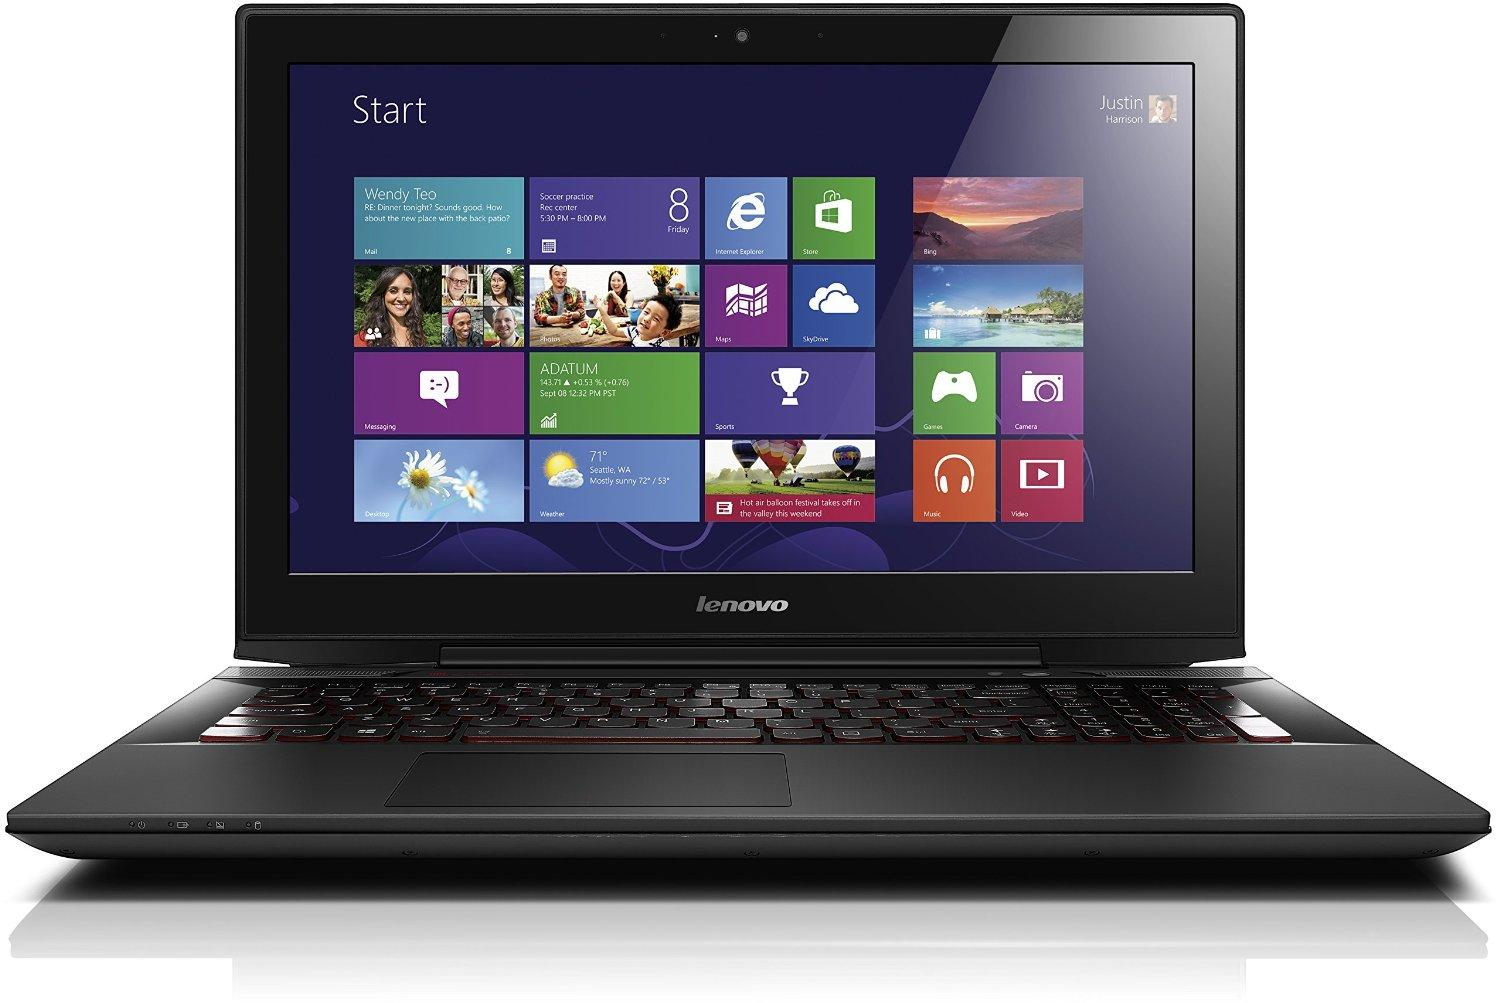 $982.91 Lenovo Y50-70 Laptop - 59445895 - Black